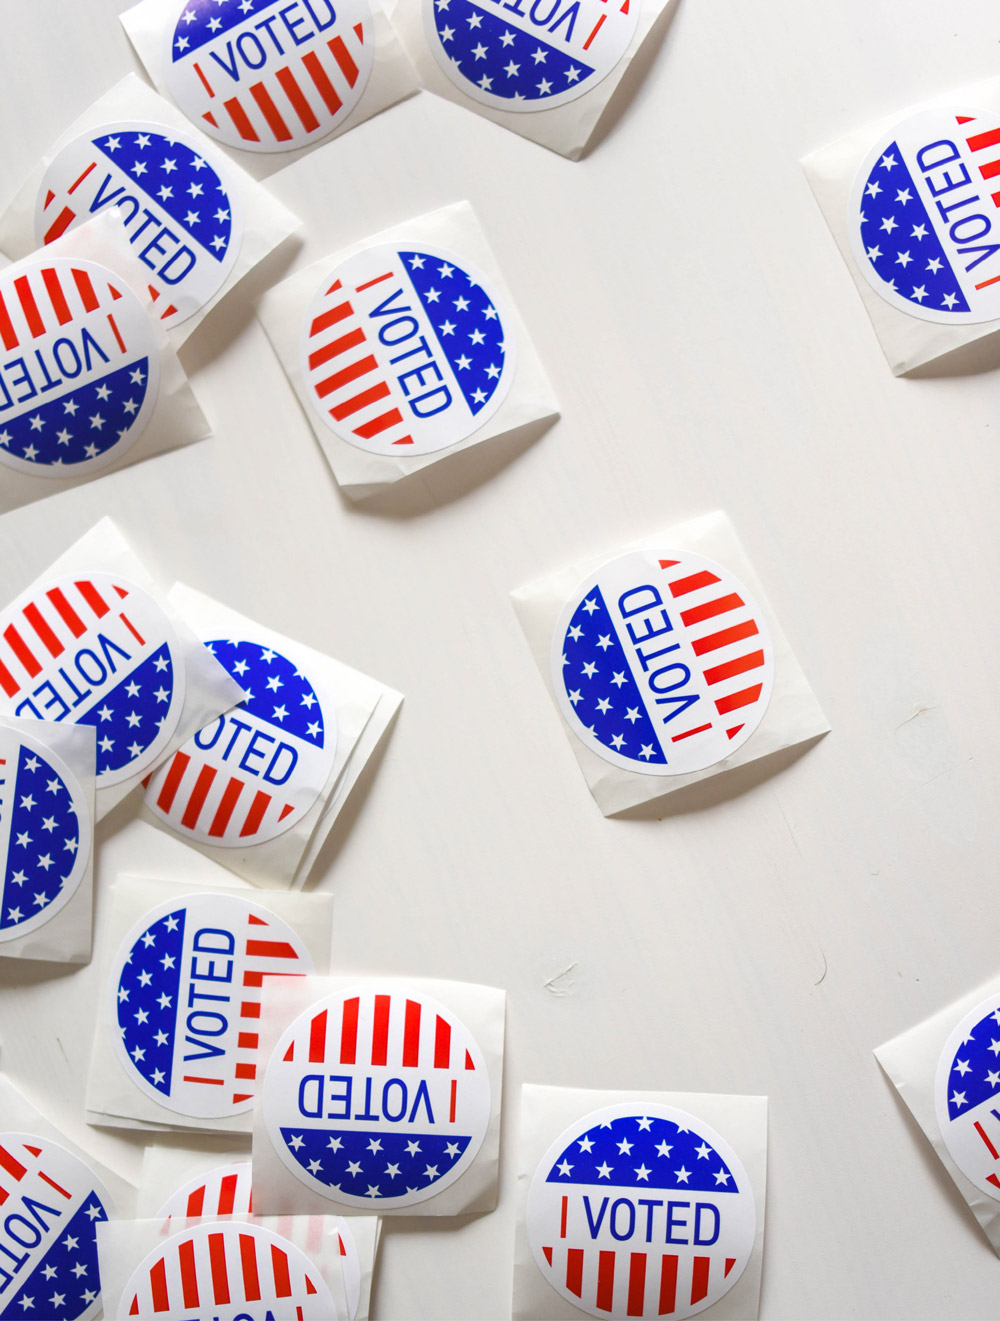 """Paper """"I Voted"""" stickers spread out on a table surface."""